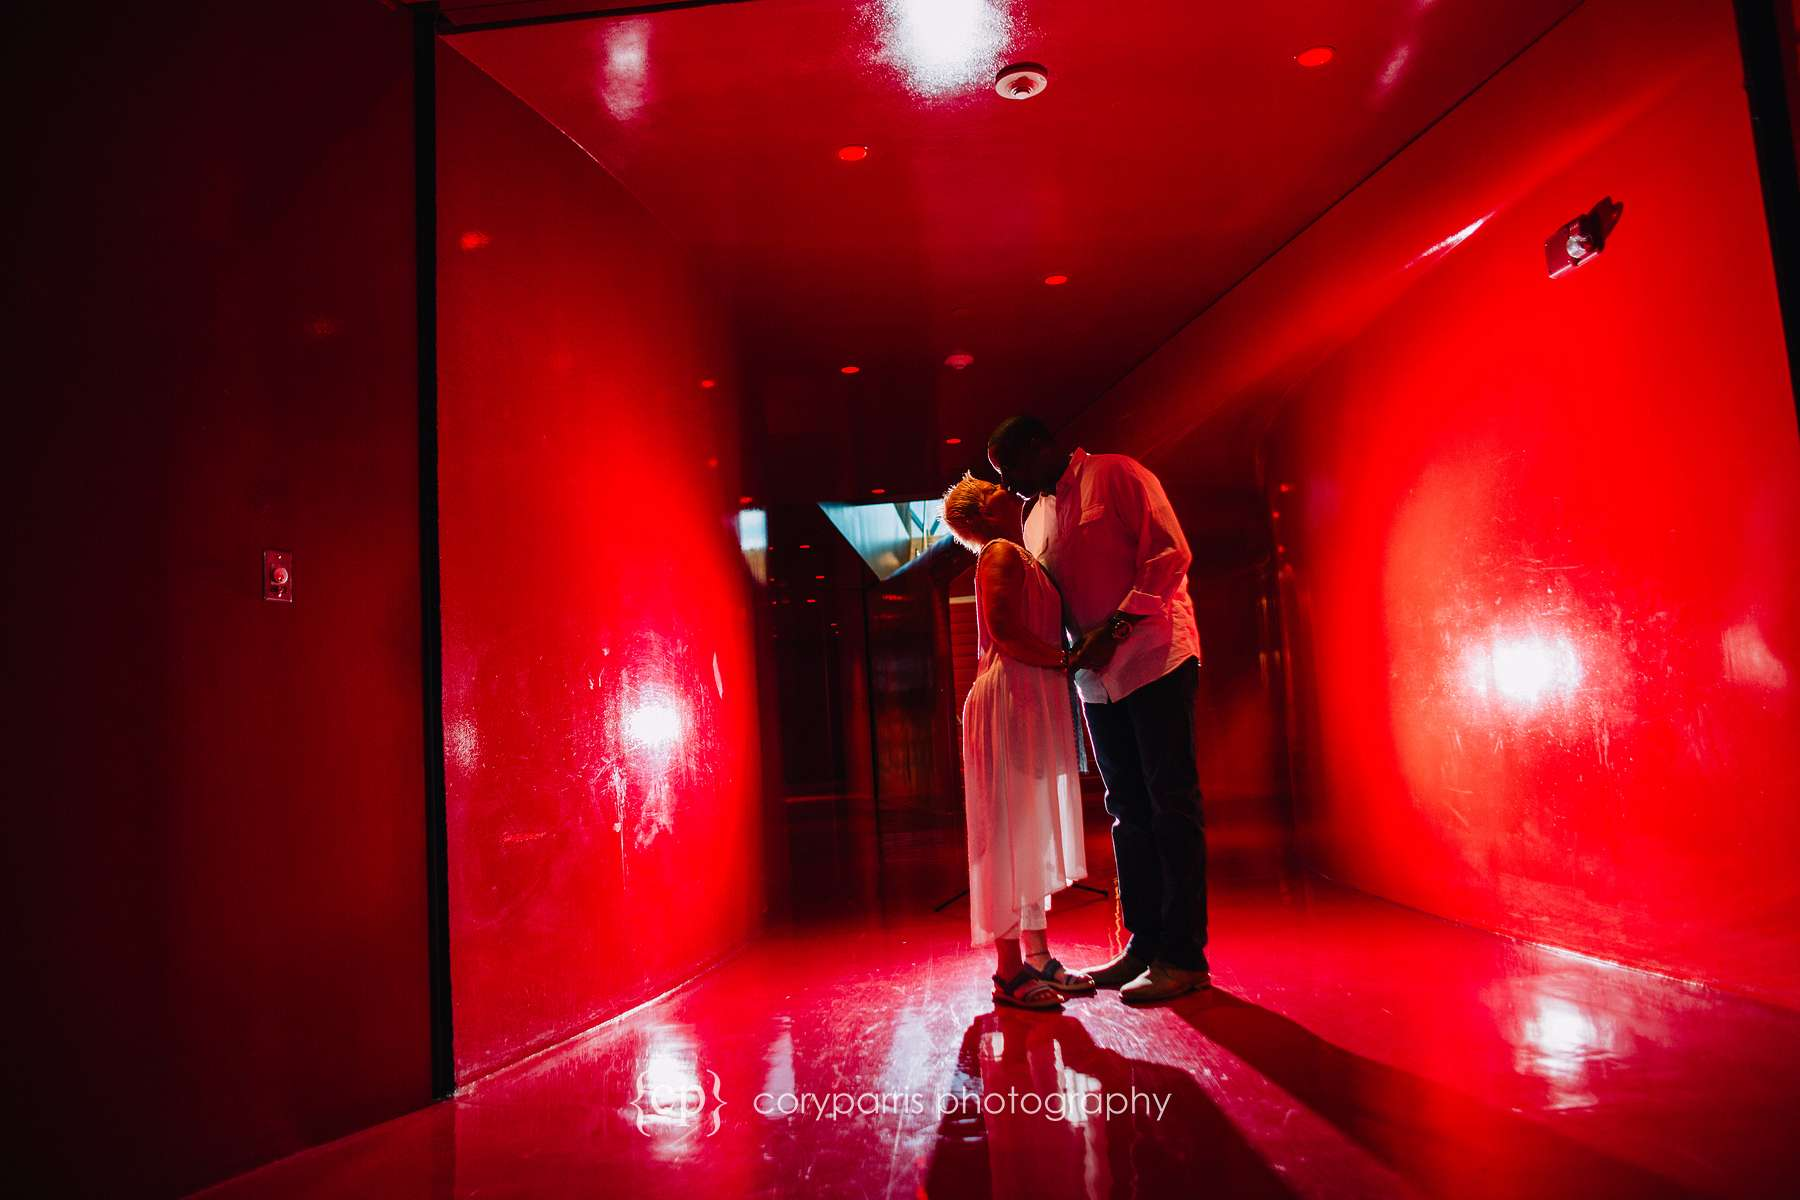 Inside the red room at the Seattle Public Library